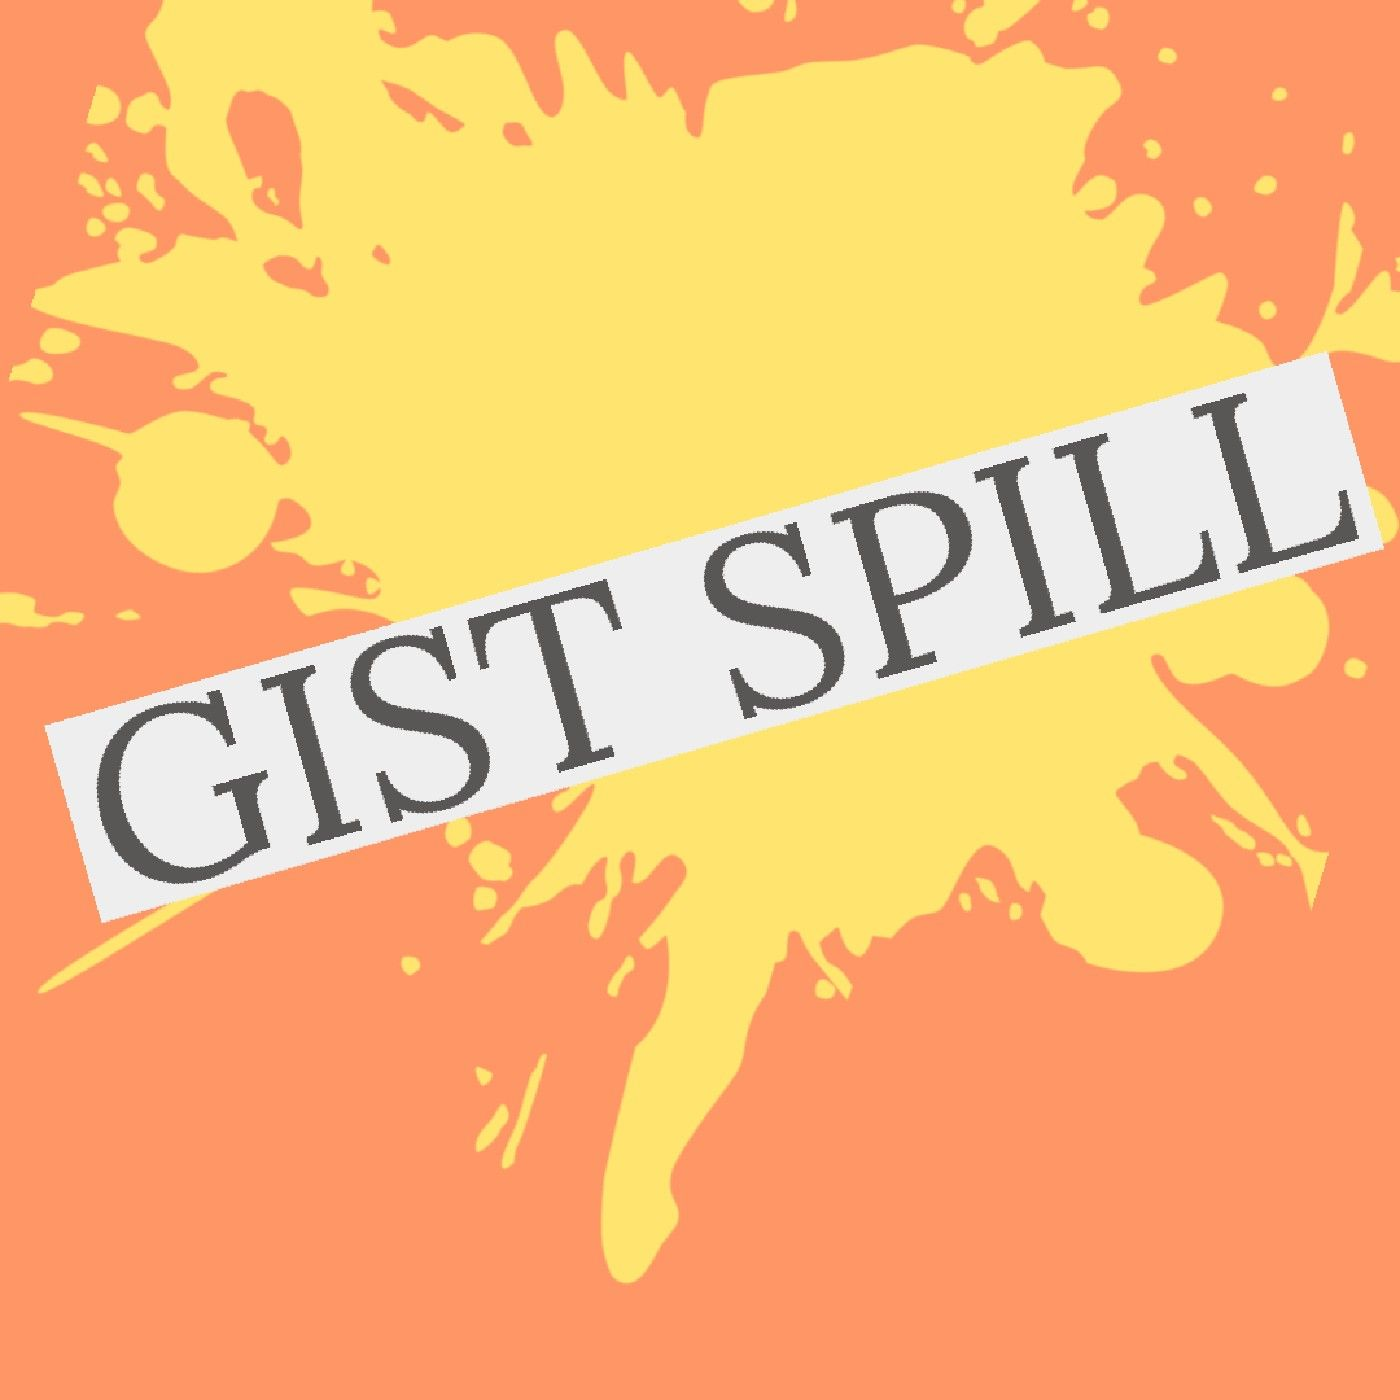 Gistspill with Christy